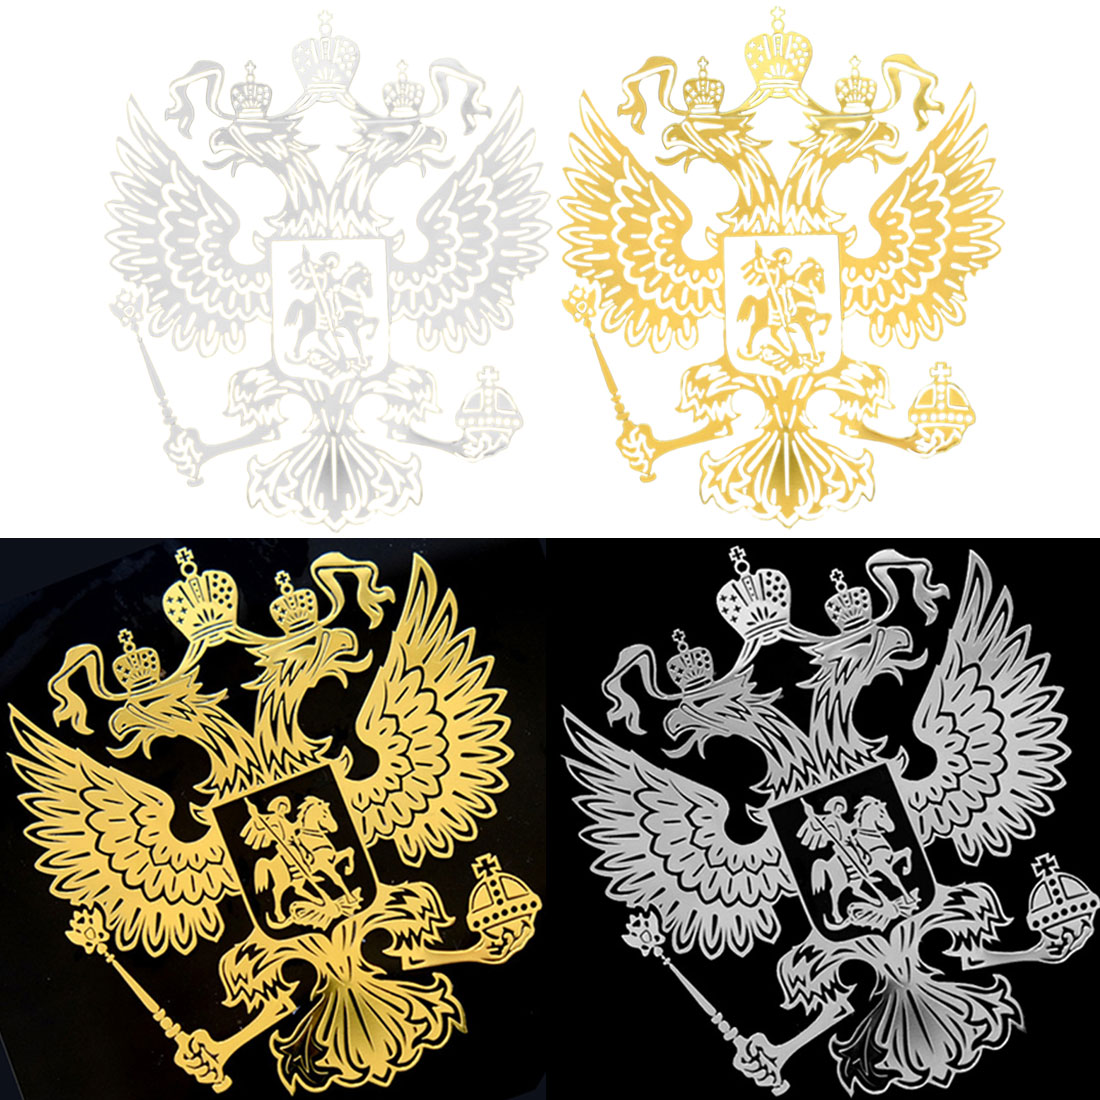 Dewtreetali  6.0*5.4cm 9.0*8.4cm Coat Of Arms Of Russia Nickel Metal Sticker Decals Russian Federation Car Stickers For Laptop